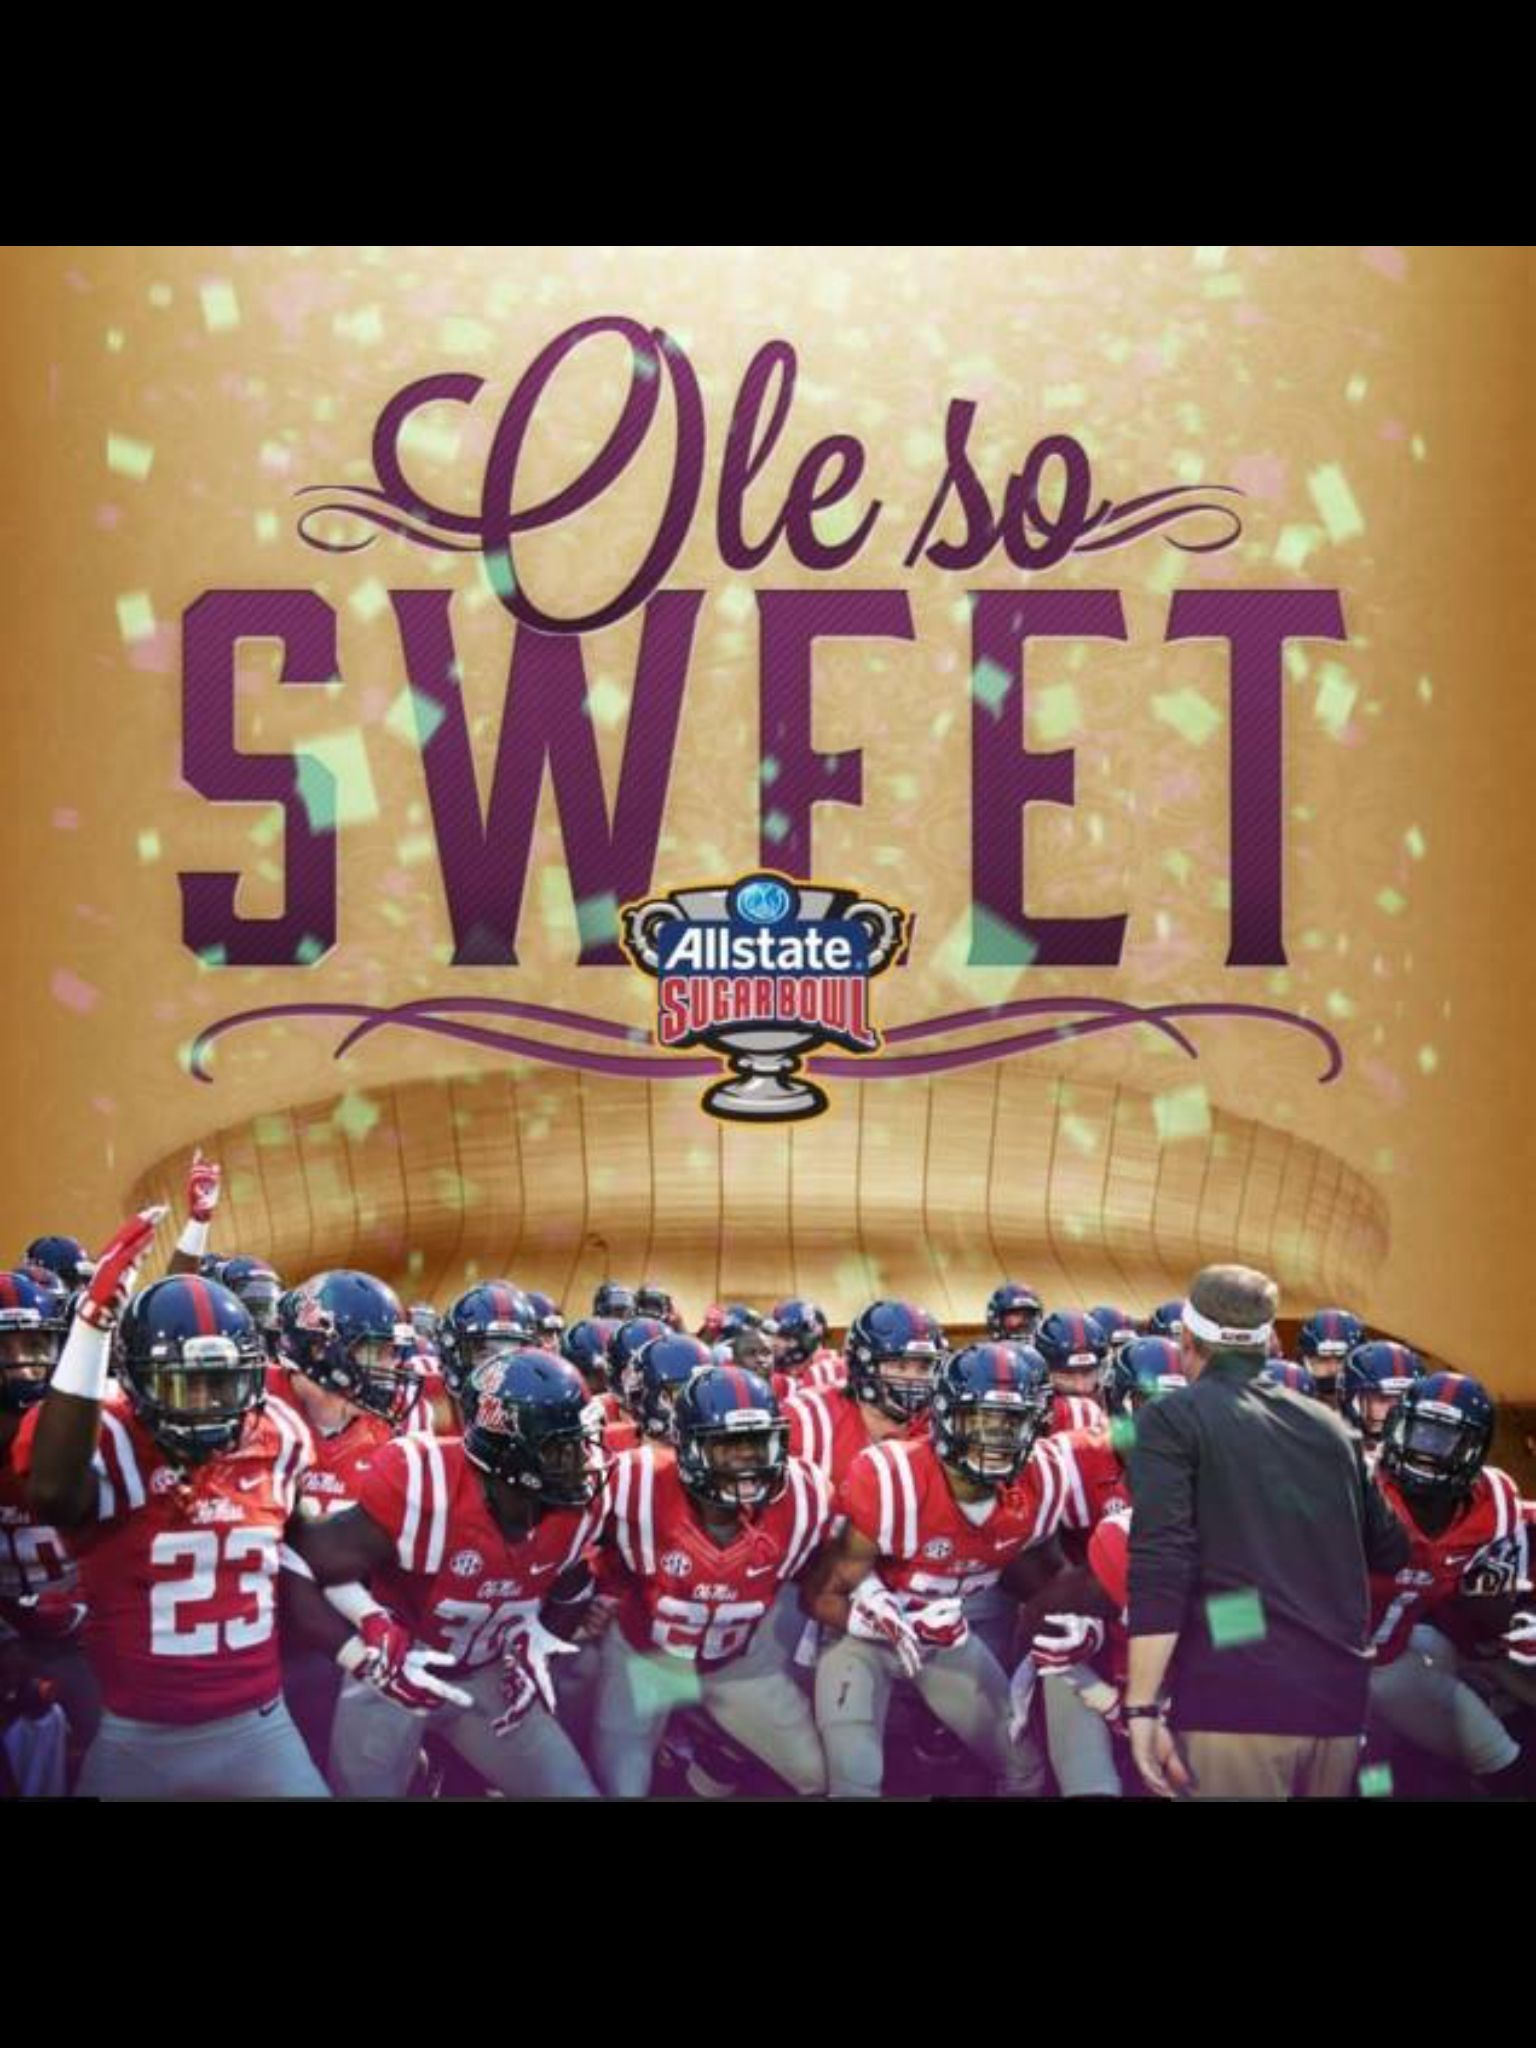 Ole Miss will play the Oklahoma State Cowboys in the Sugar Bowl New Years Day